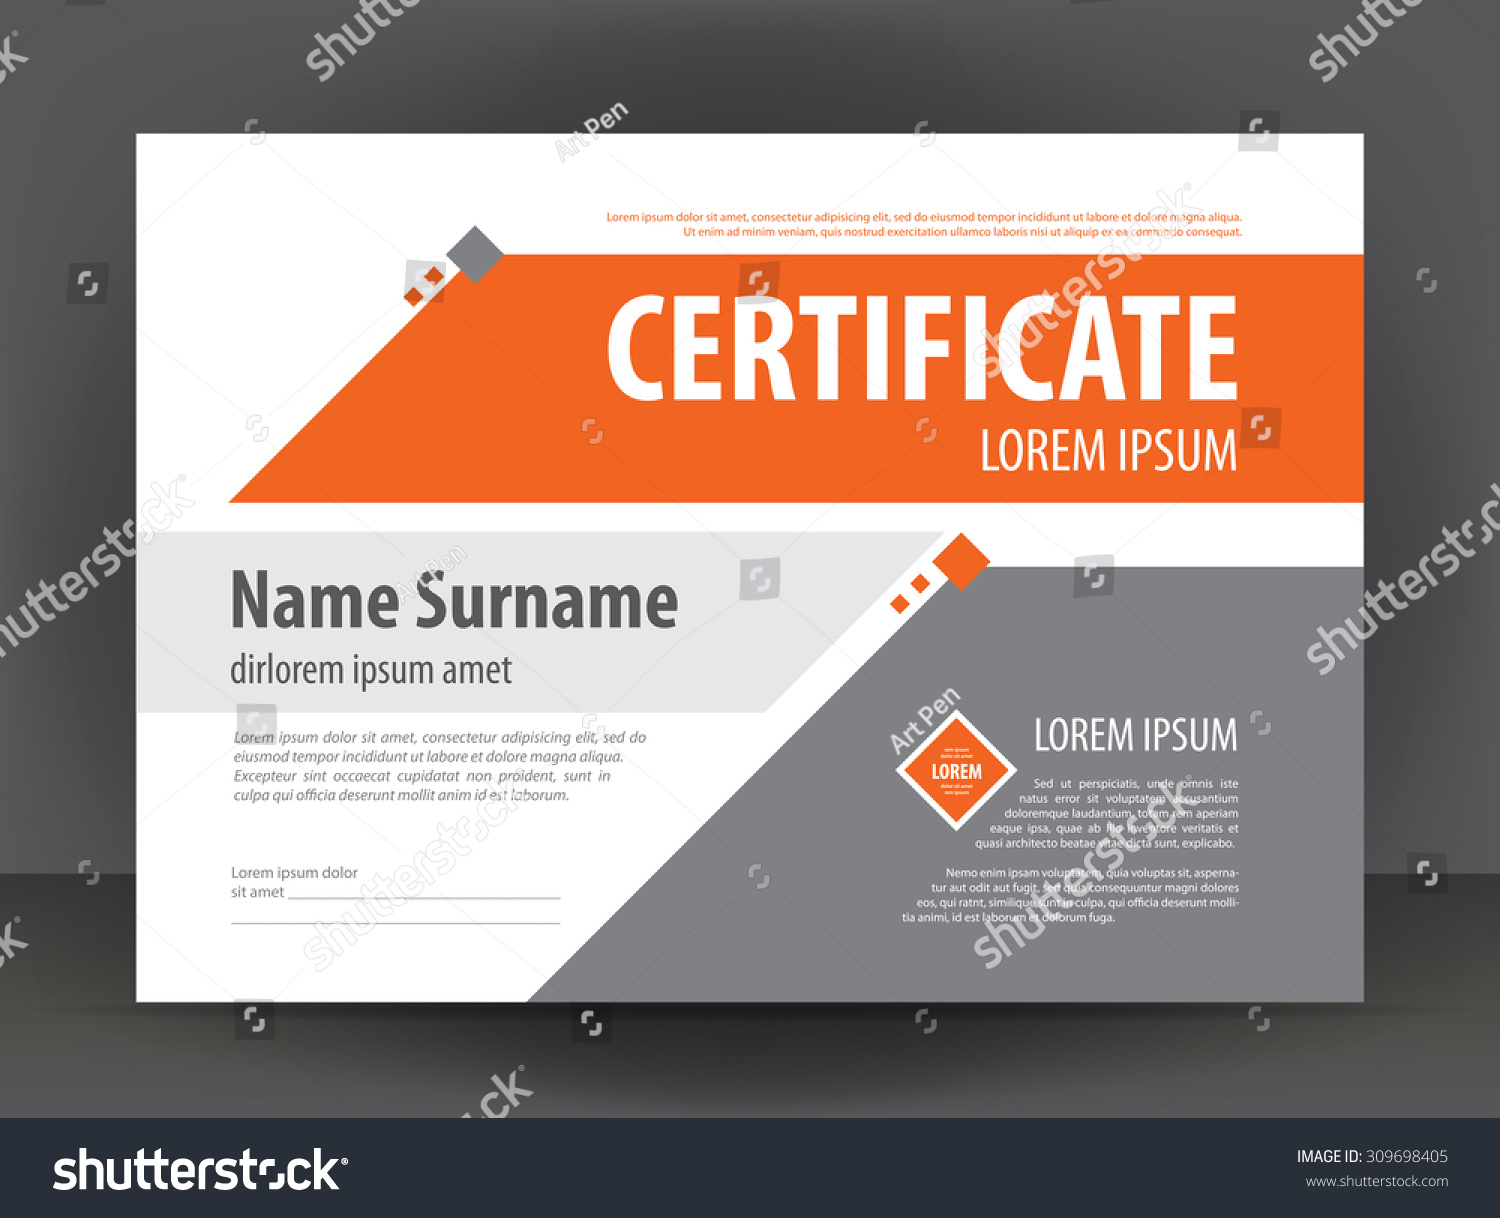 free powerpoint certificate templates